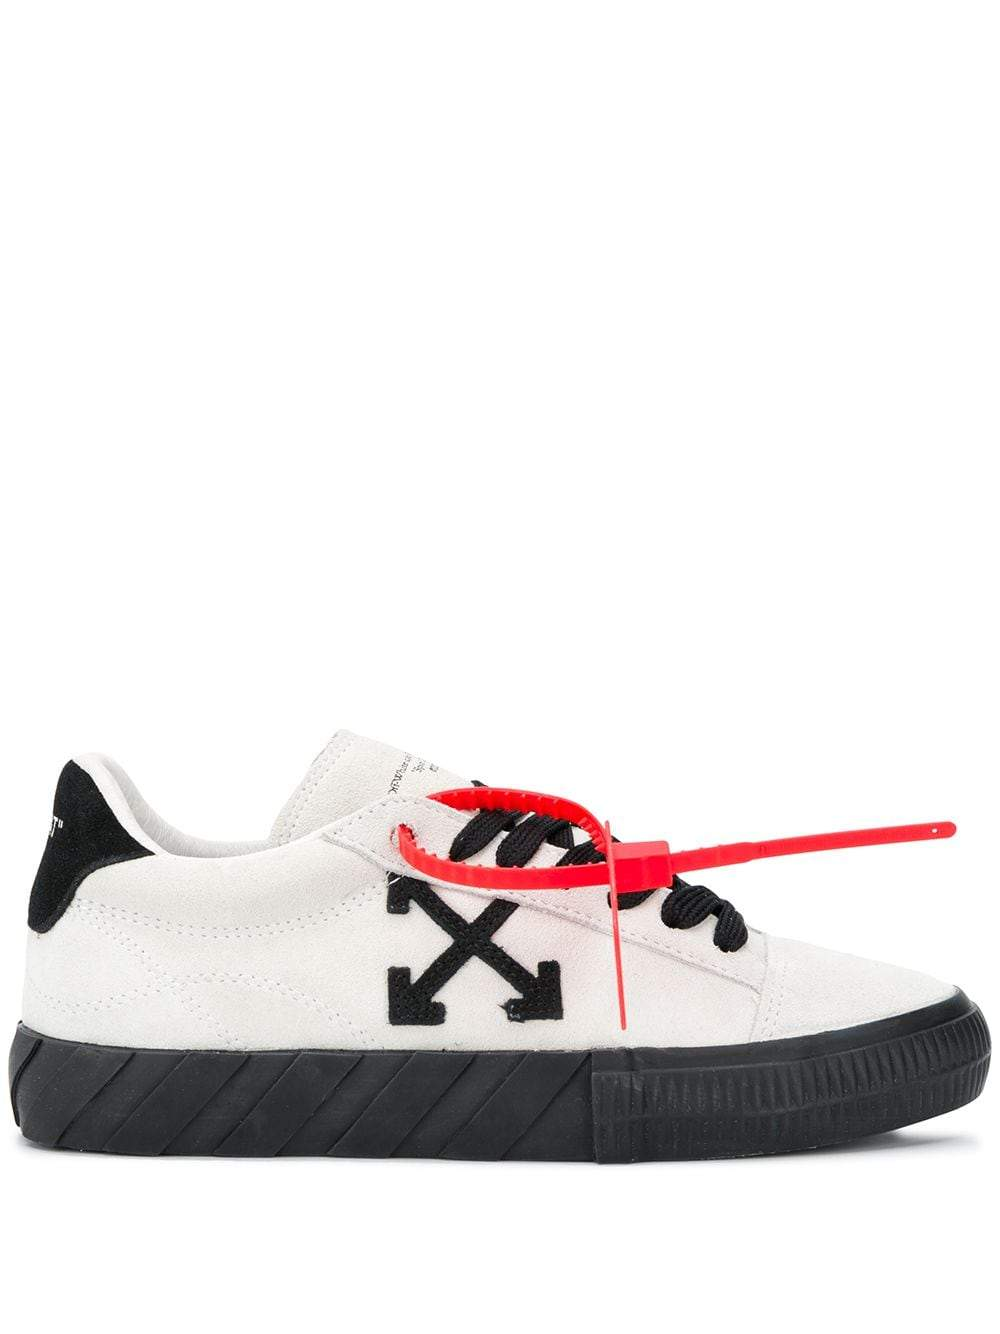 OFF-WHITE New Arrow Low Vulcanized Sneakers White